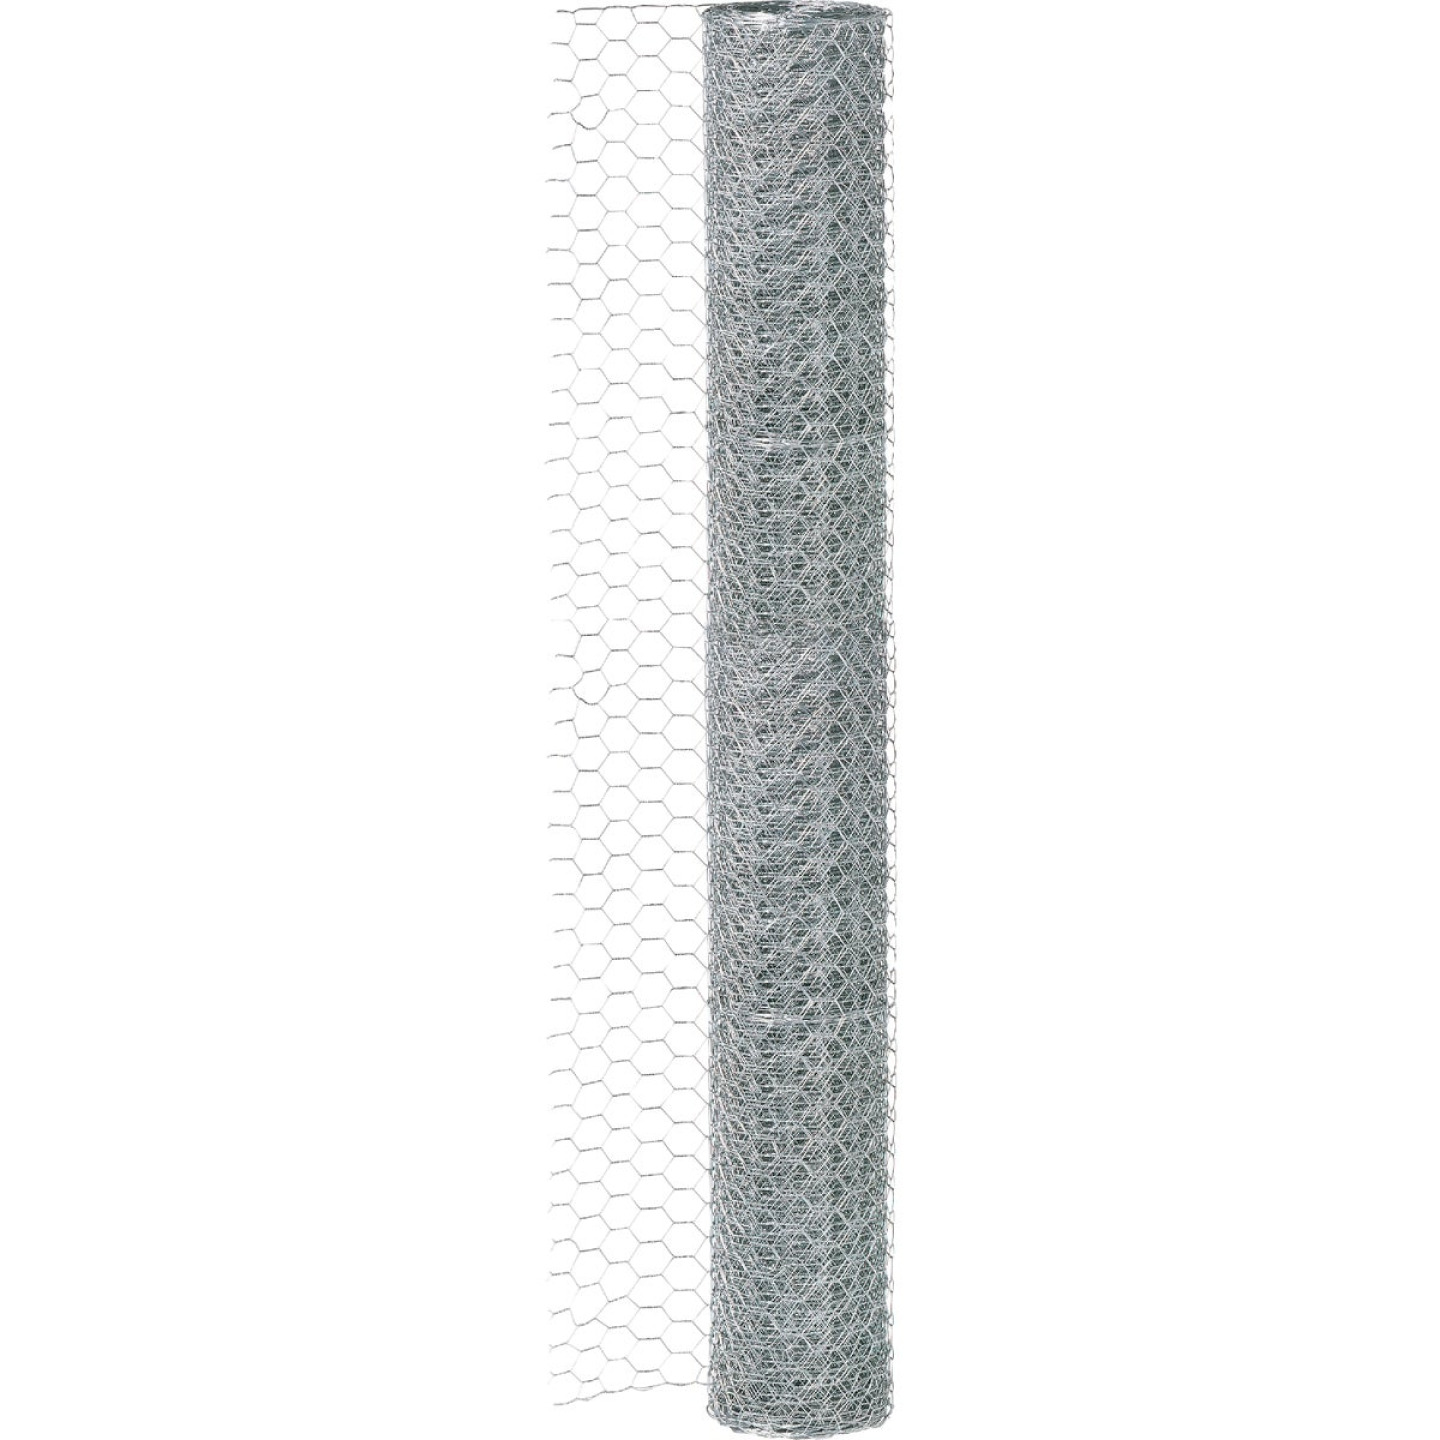 1/2 In. x 36 In. H. x 25 Ft. L. Hexagonal Wire Poultry Netting Image 3